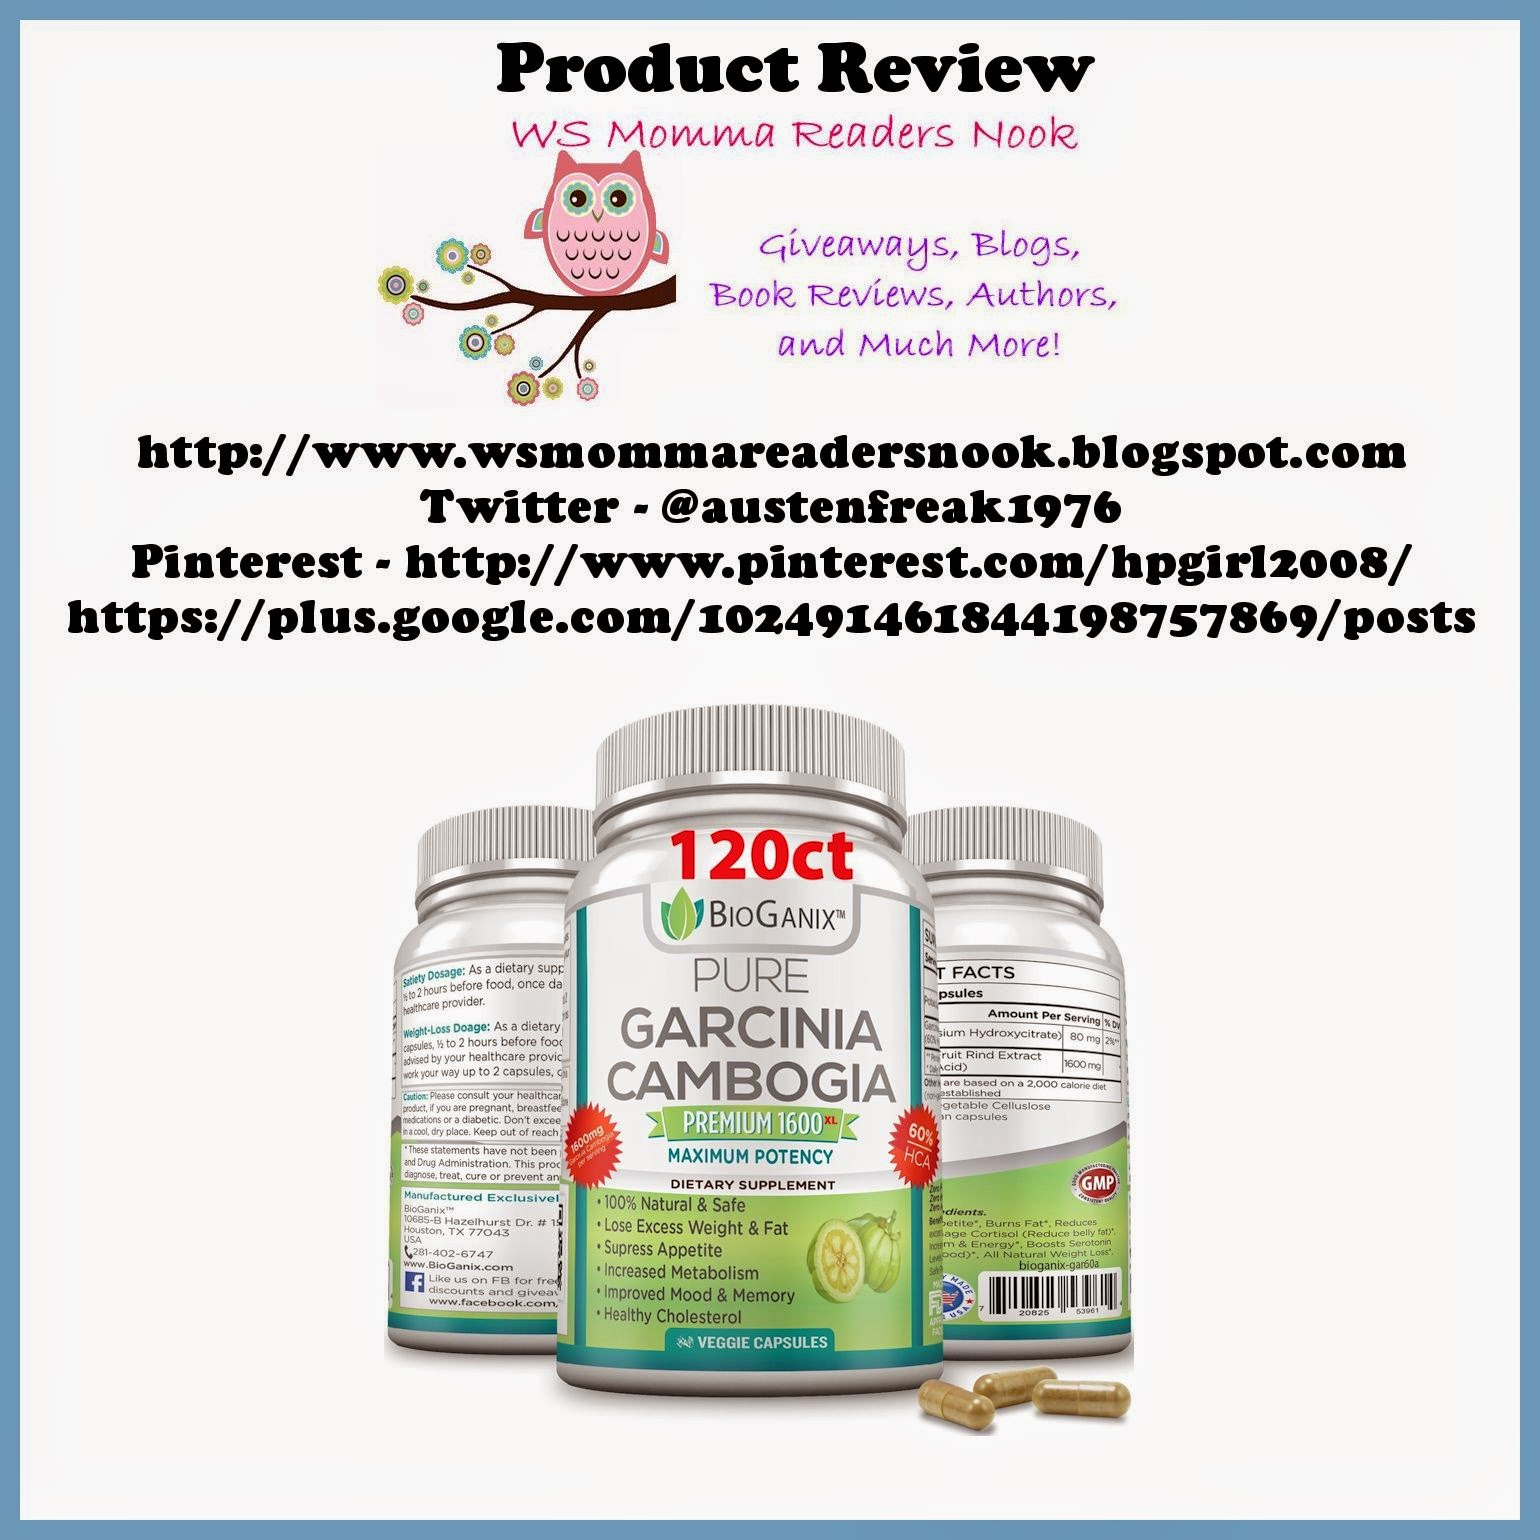 http://www.amazon.com/bioganix-garcinia-cambogia-included-guarantee/dp/b00gaxix0u/ref=sr_1_55?ie=utf8&qid=1409152011&sr=8-55&keywords=pure+garcinia+cambogia+hca